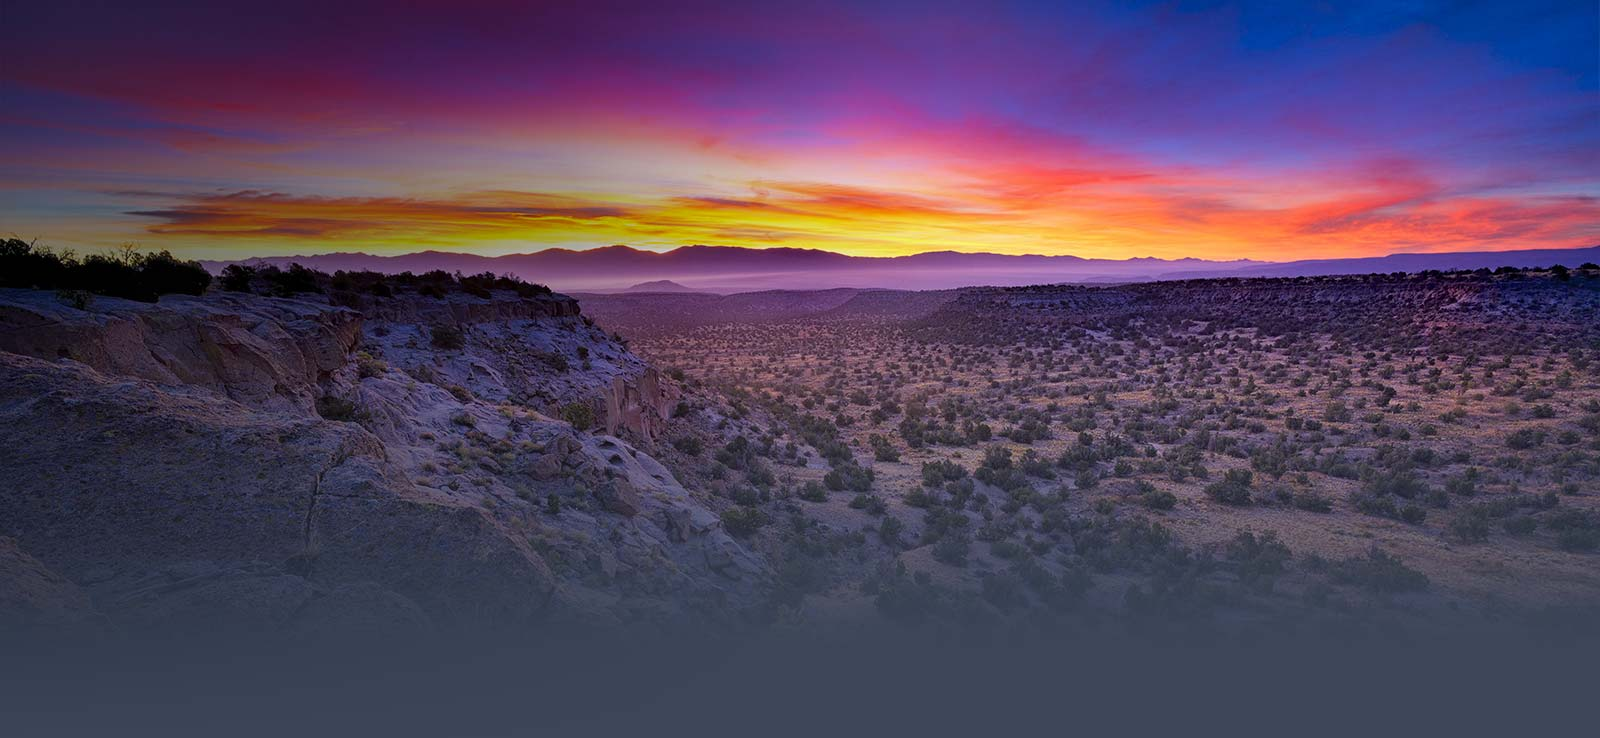 Colorful New Mexico sunset